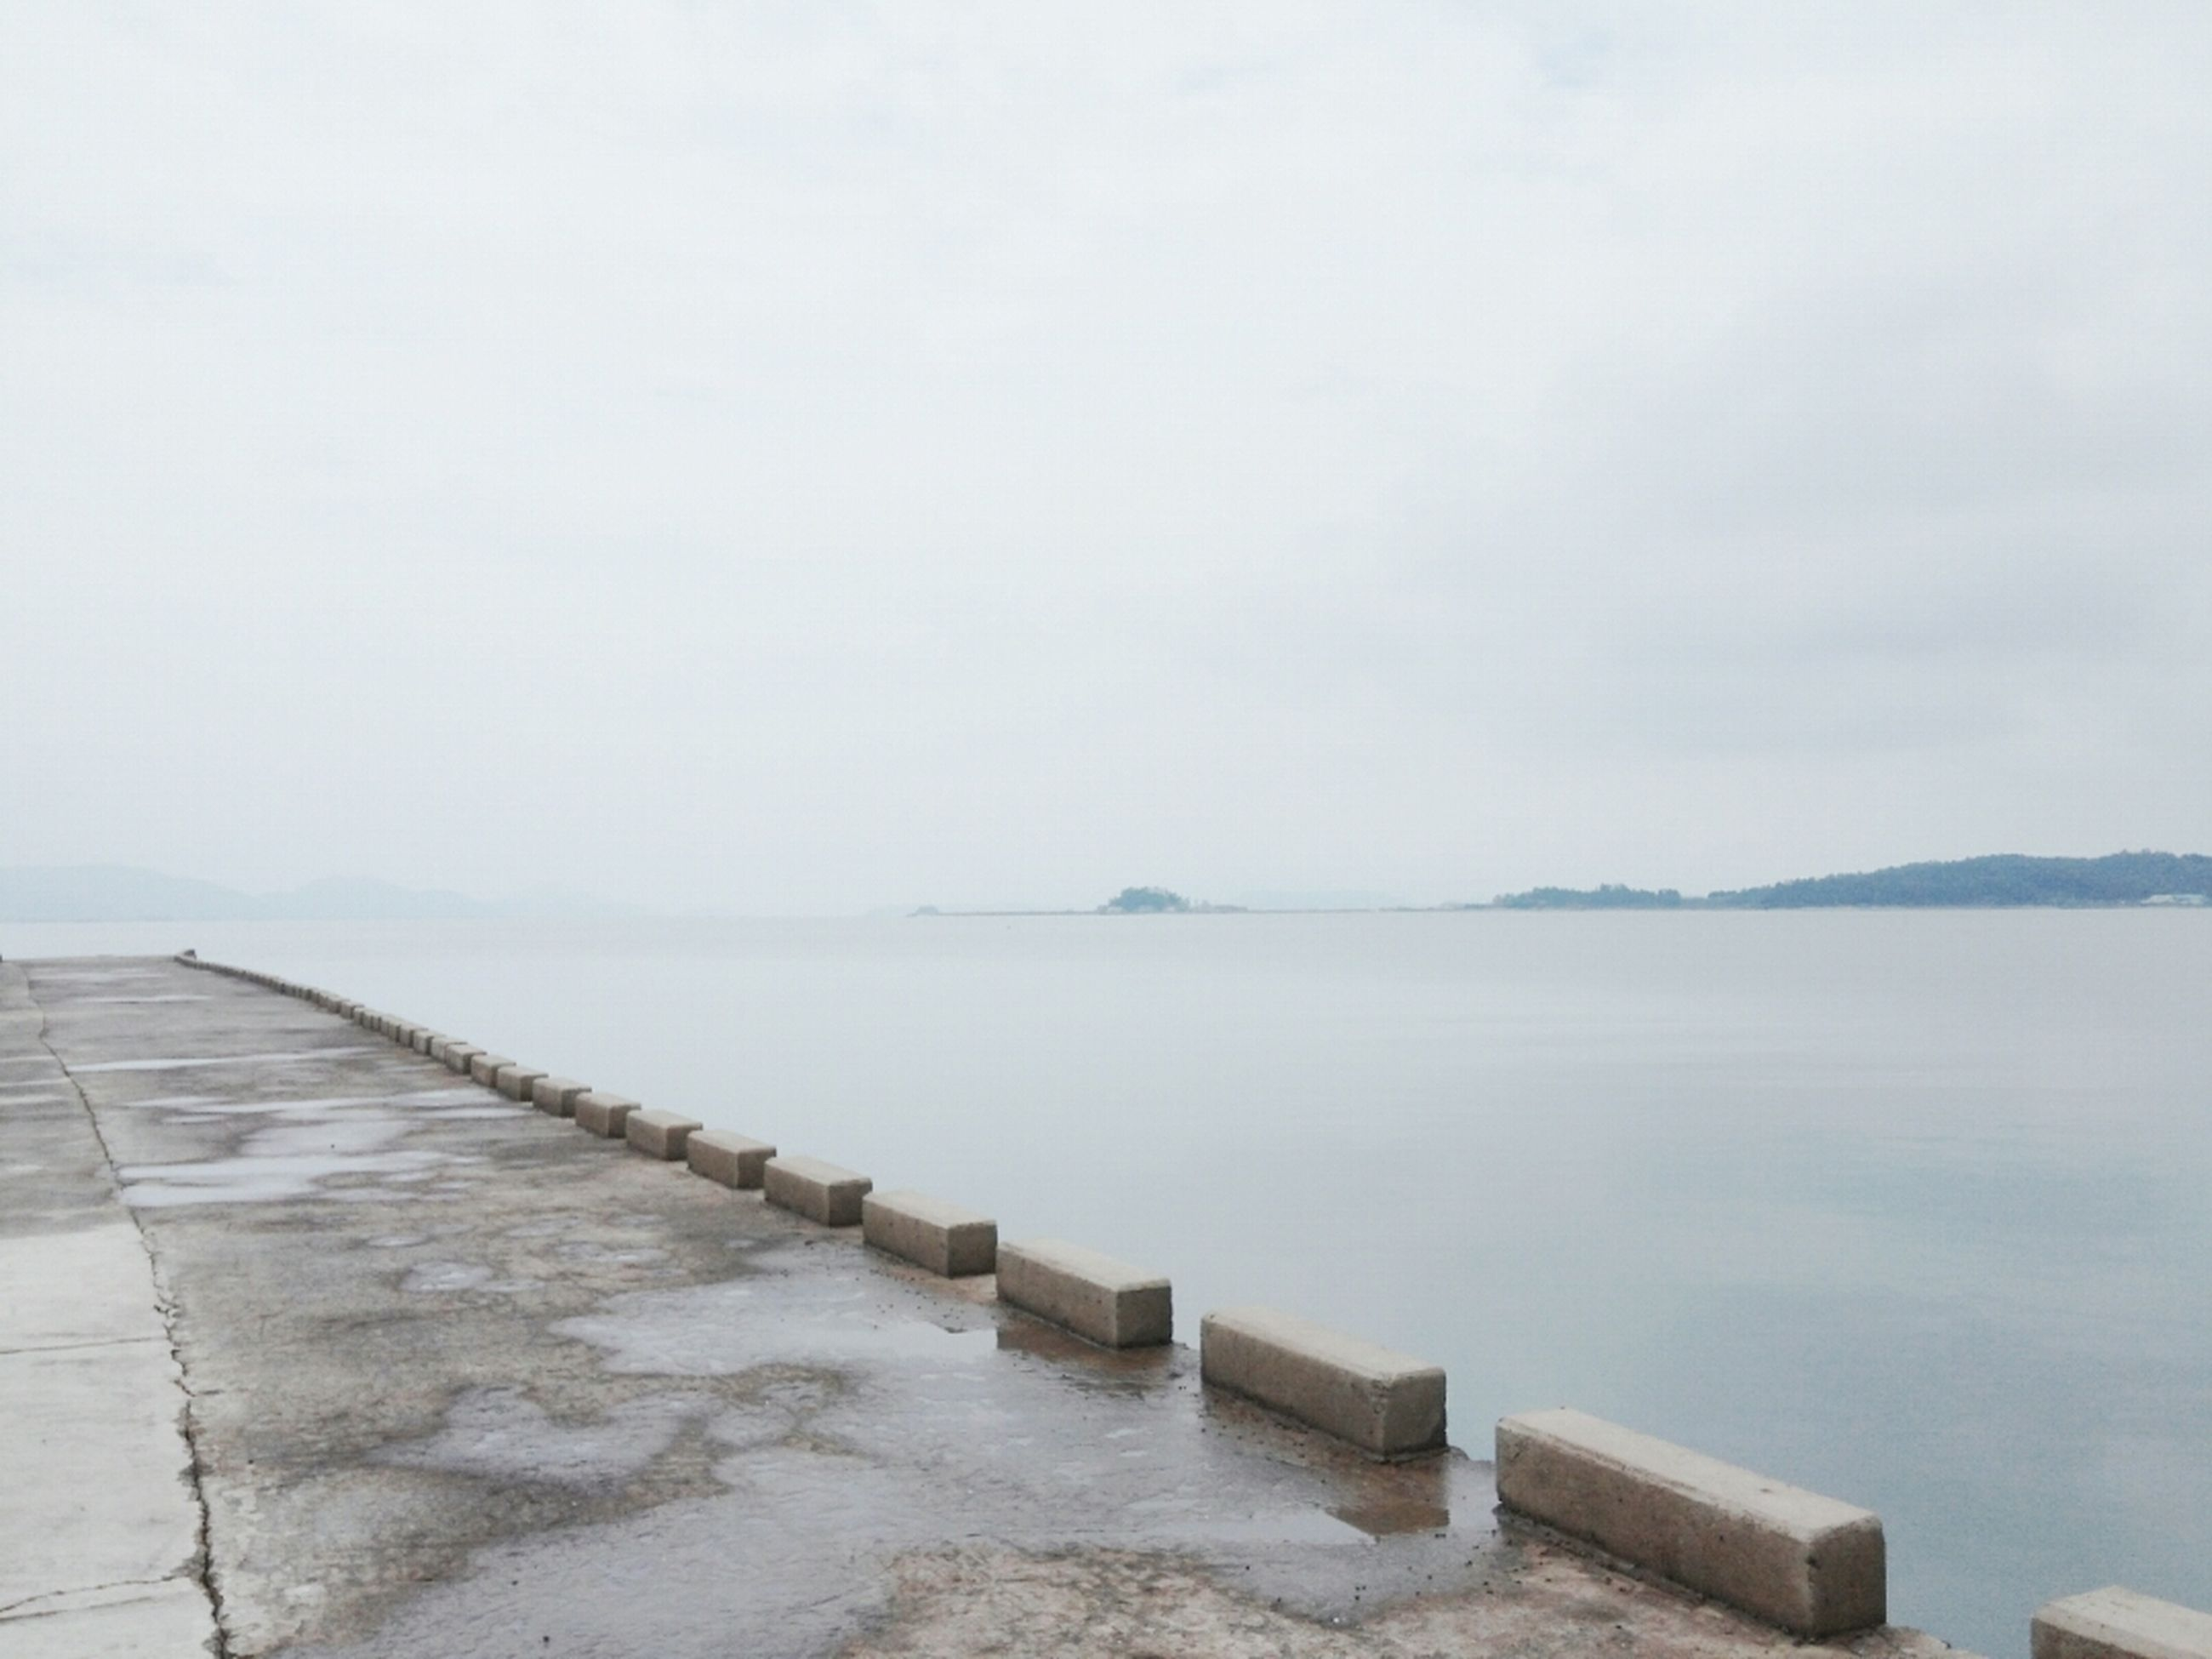 water, sea, tranquility, tranquil scene, sky, scenics, nature, copy space, pier, lake, beauty in nature, day, built structure, outdoors, calm, no people, idyllic, overcast, weather, horizon over water